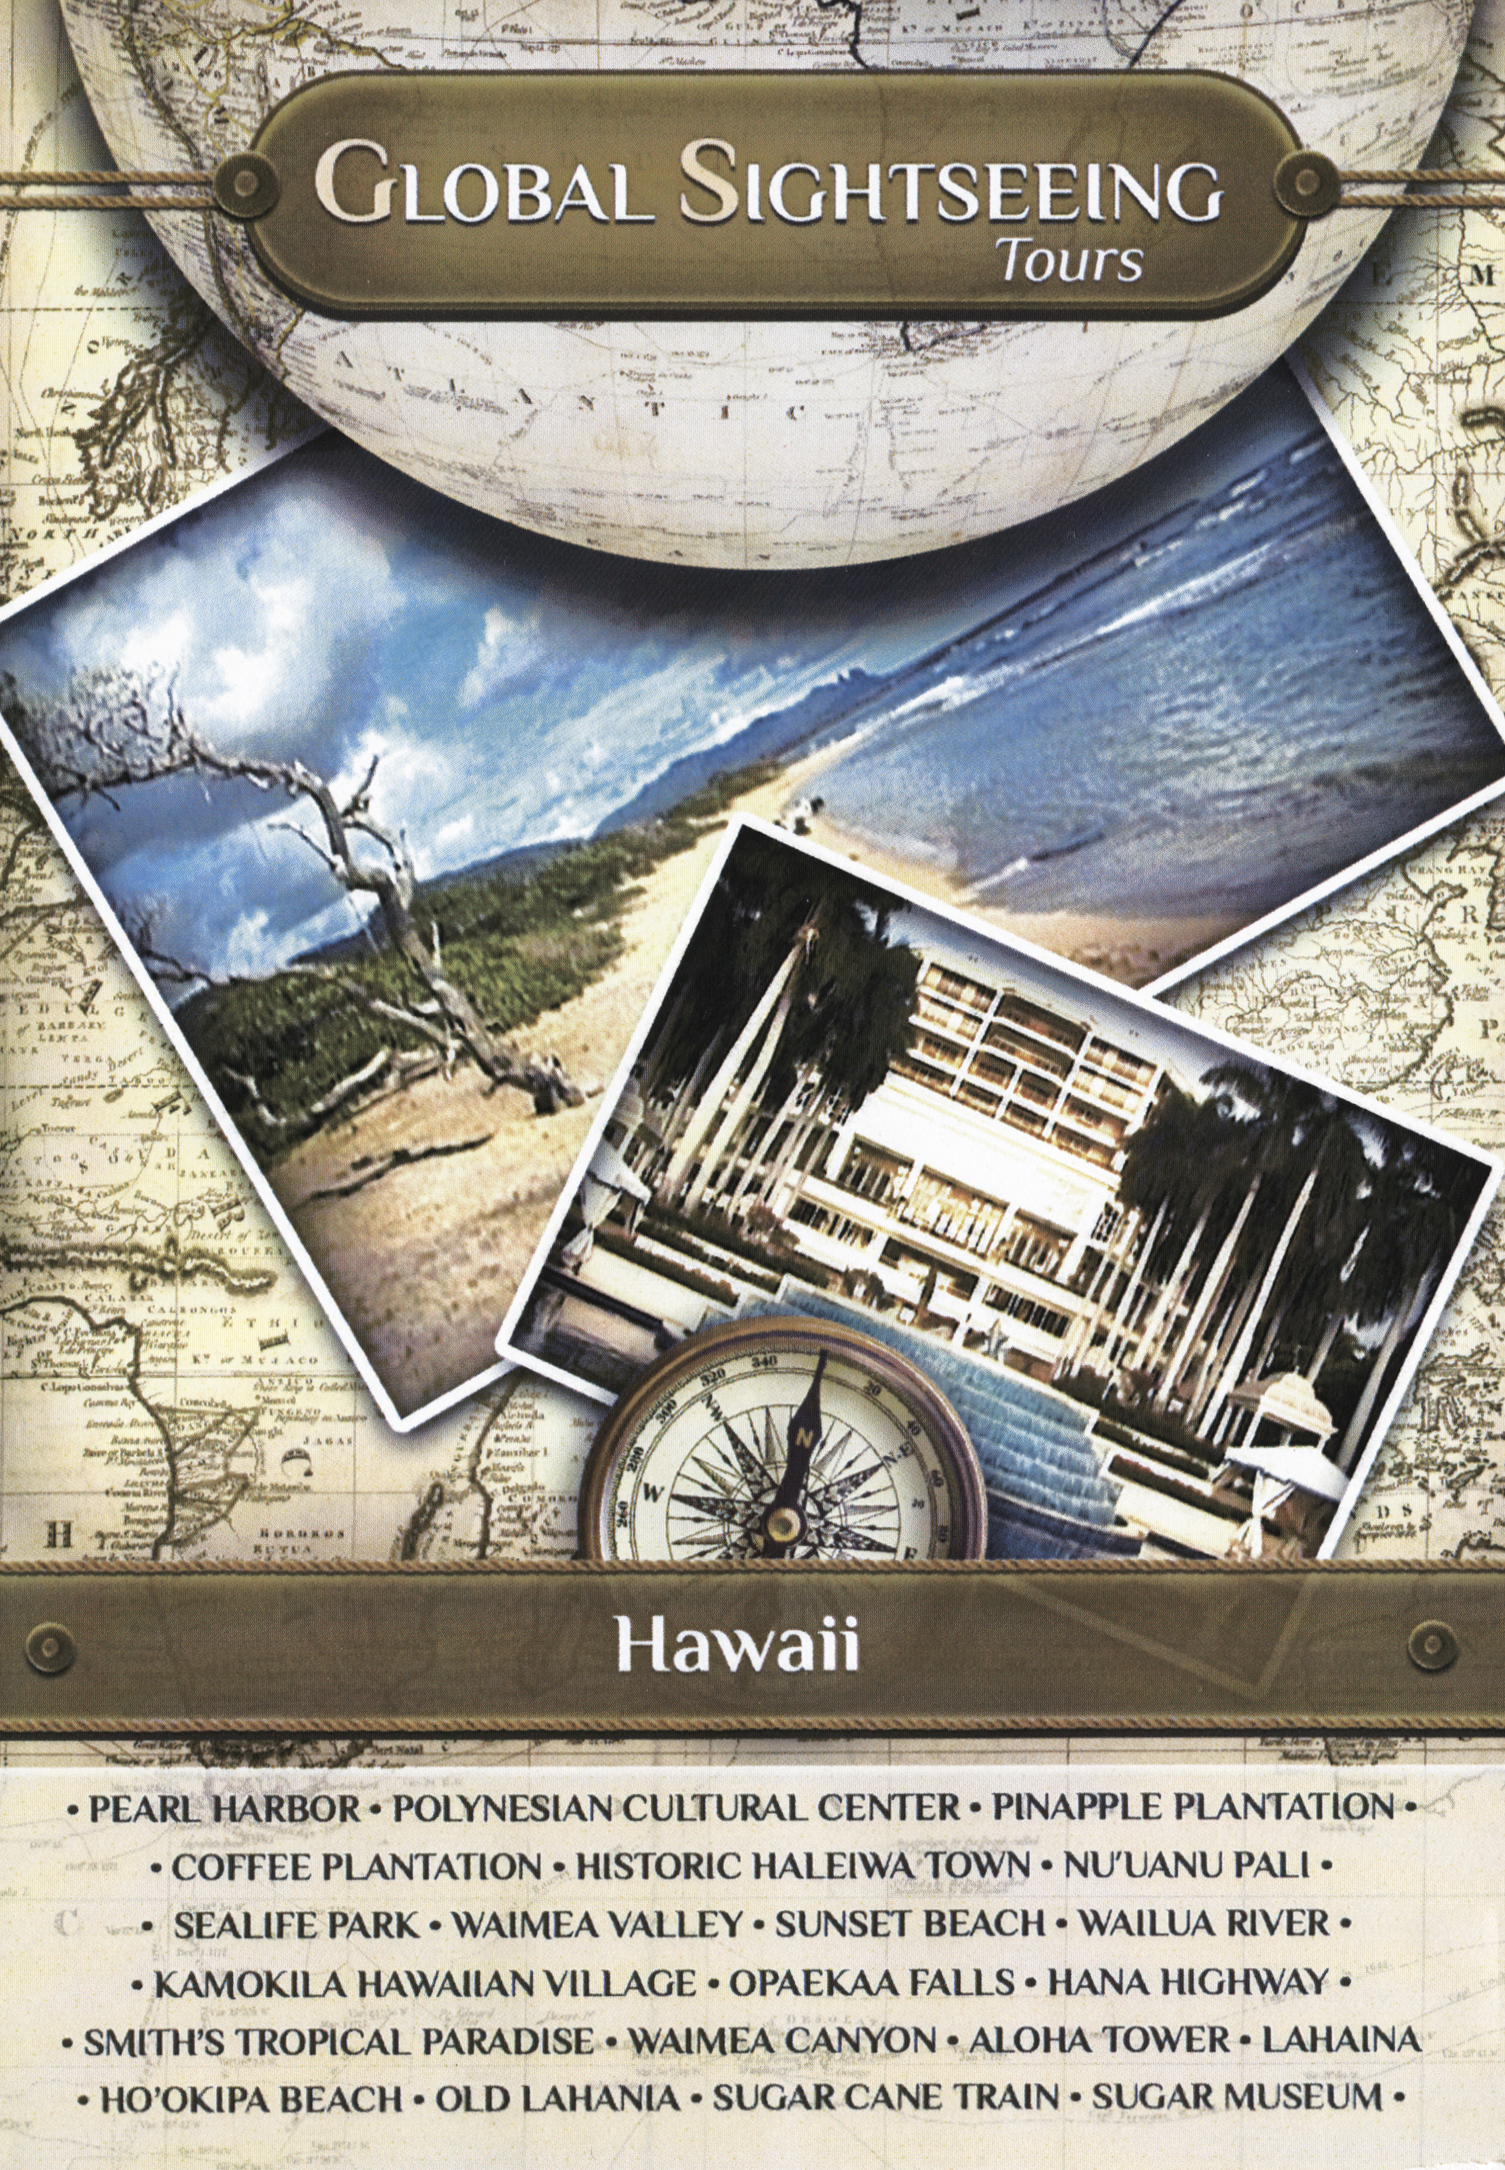 Global Sightseeing Tours: Hawaii